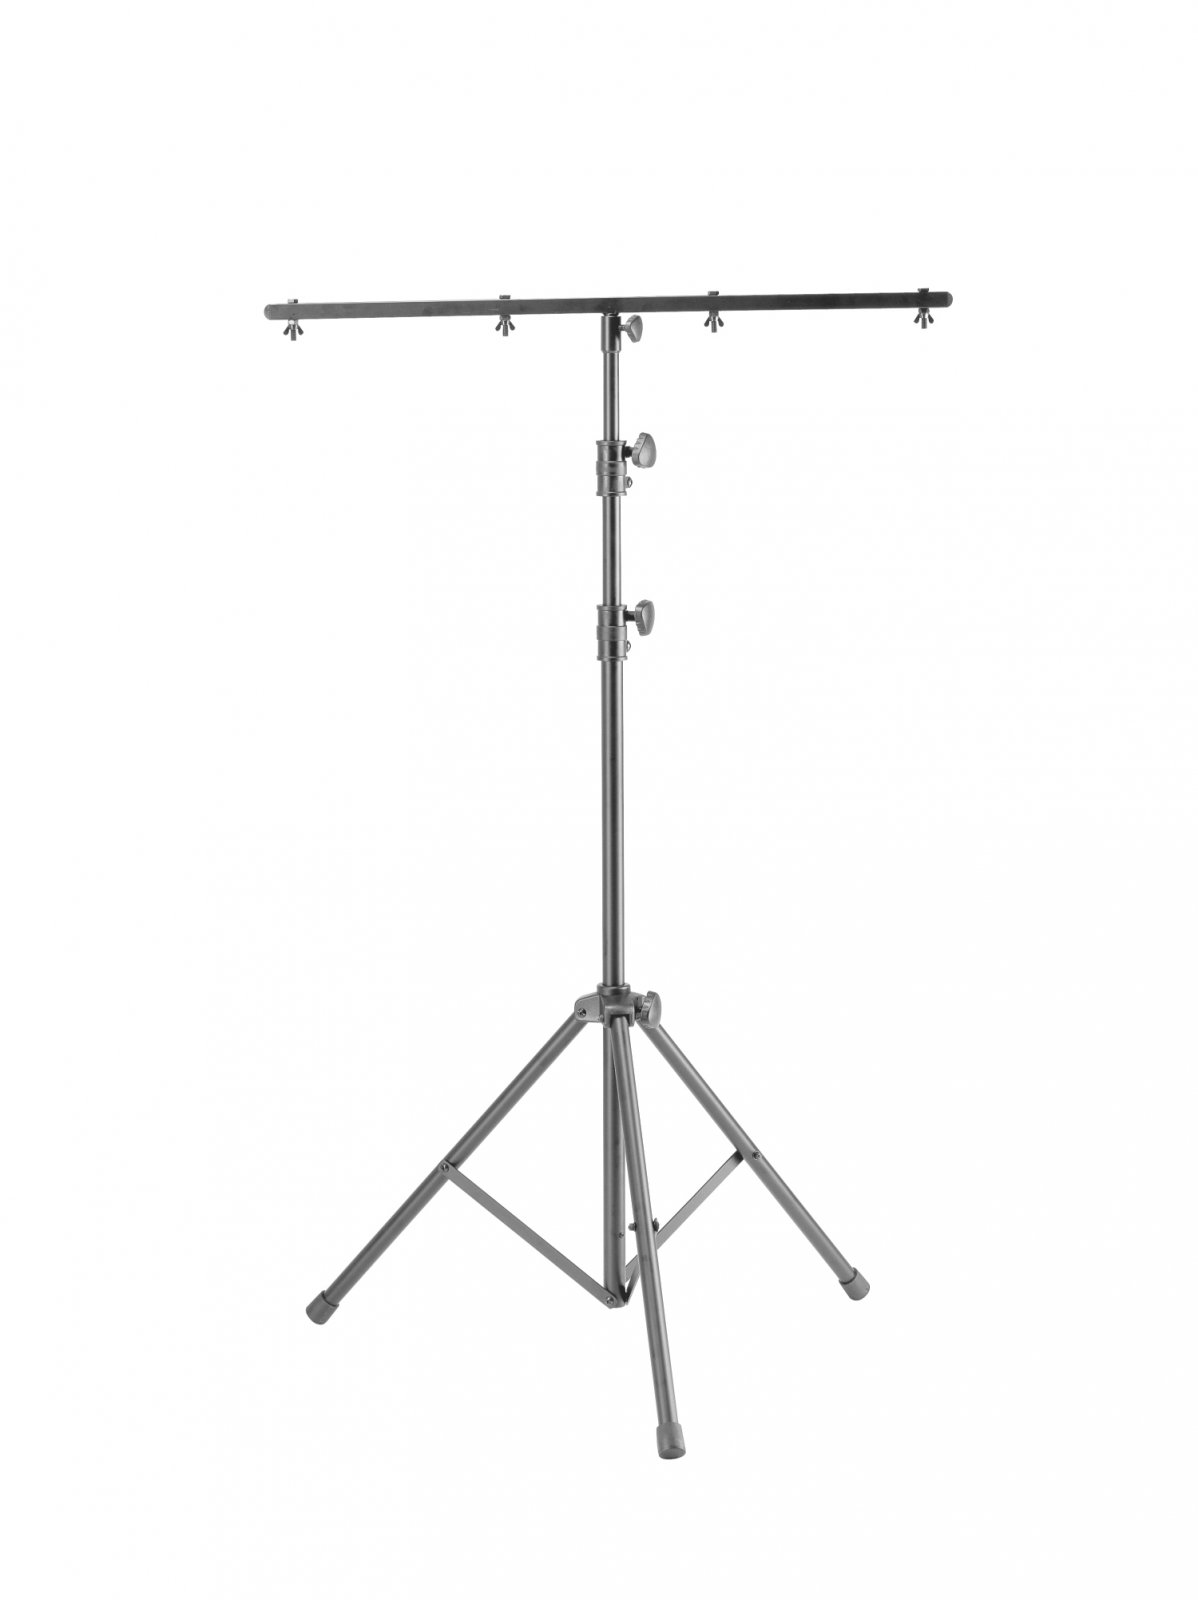 Odyssey Case LTP6 - Lighting Stand, 9' Black